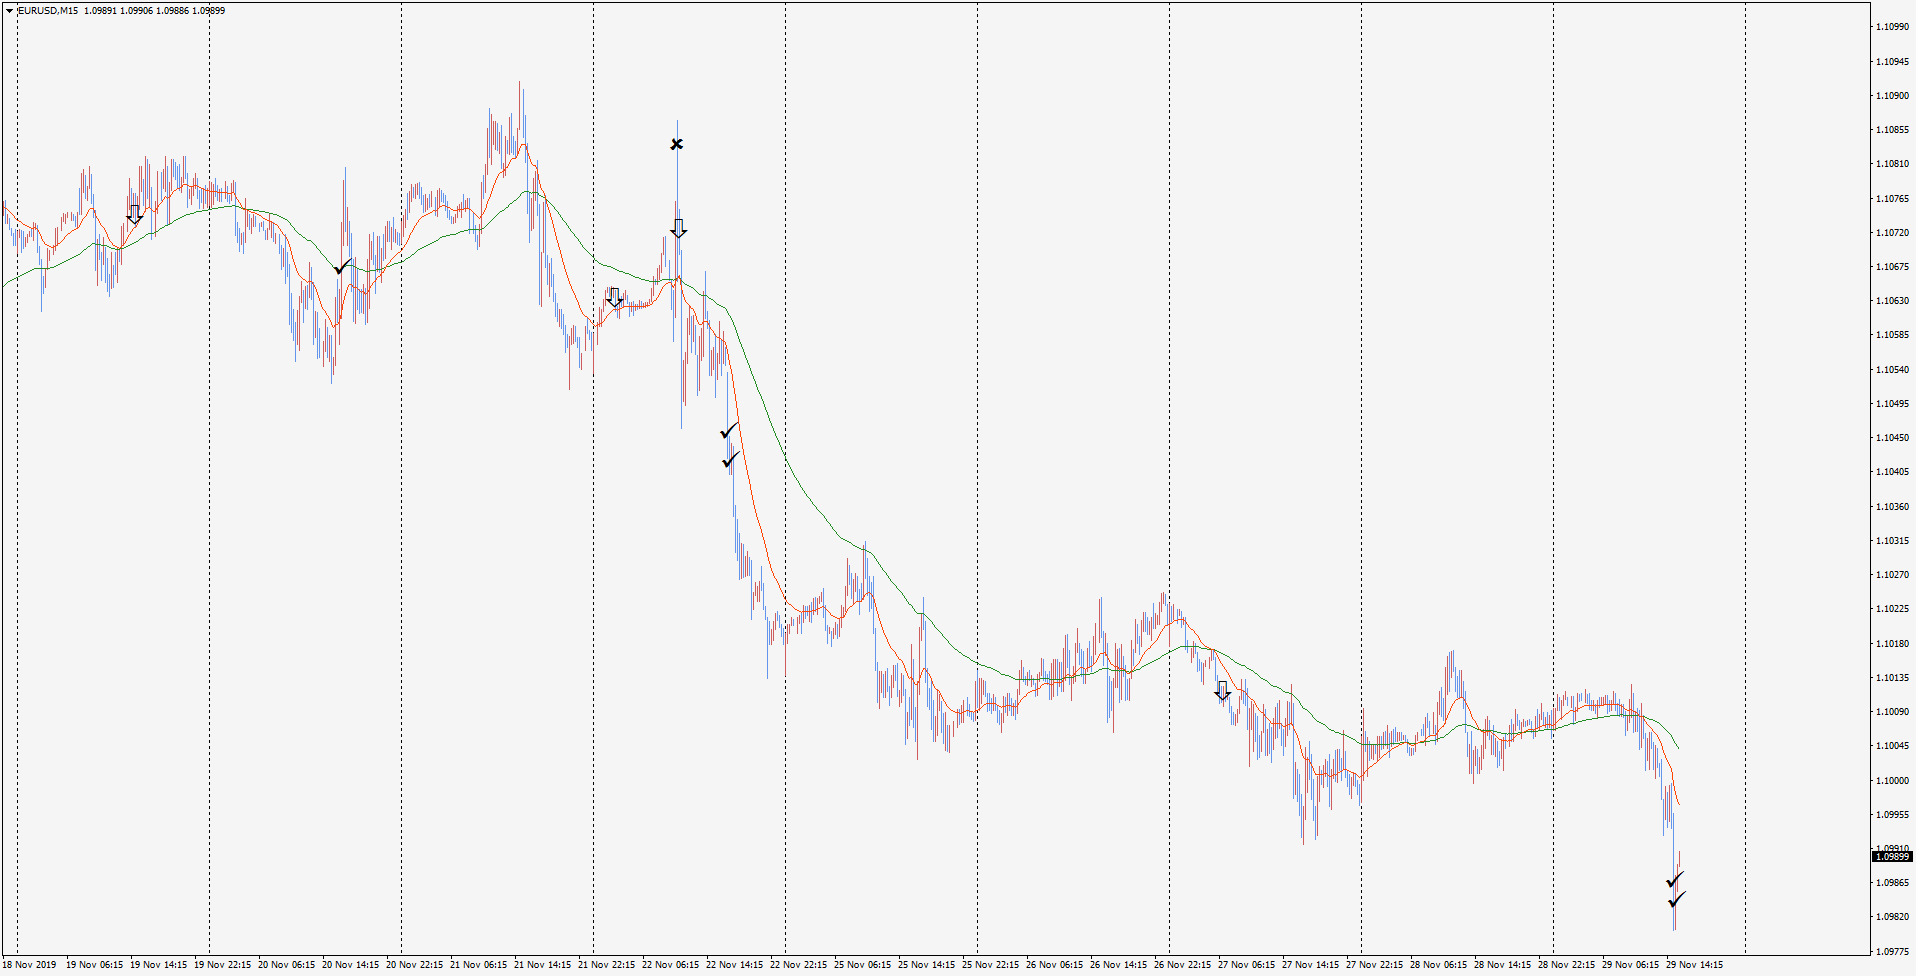 19-11-29-eurusd-m15-tradexfin-limited.png